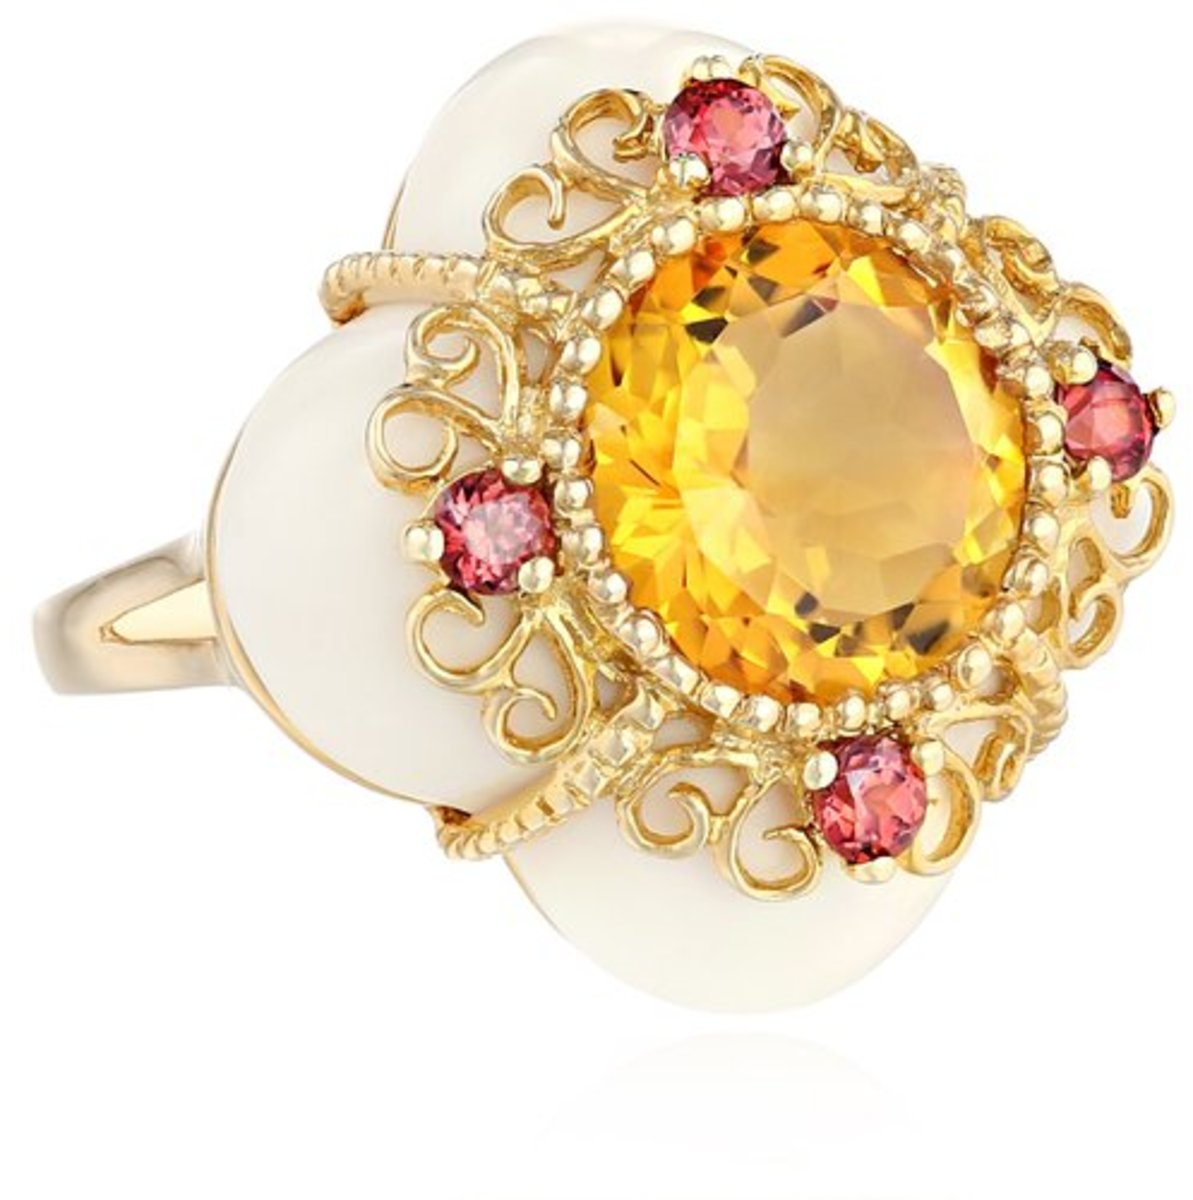 Citrine Gemstone is So Pretty